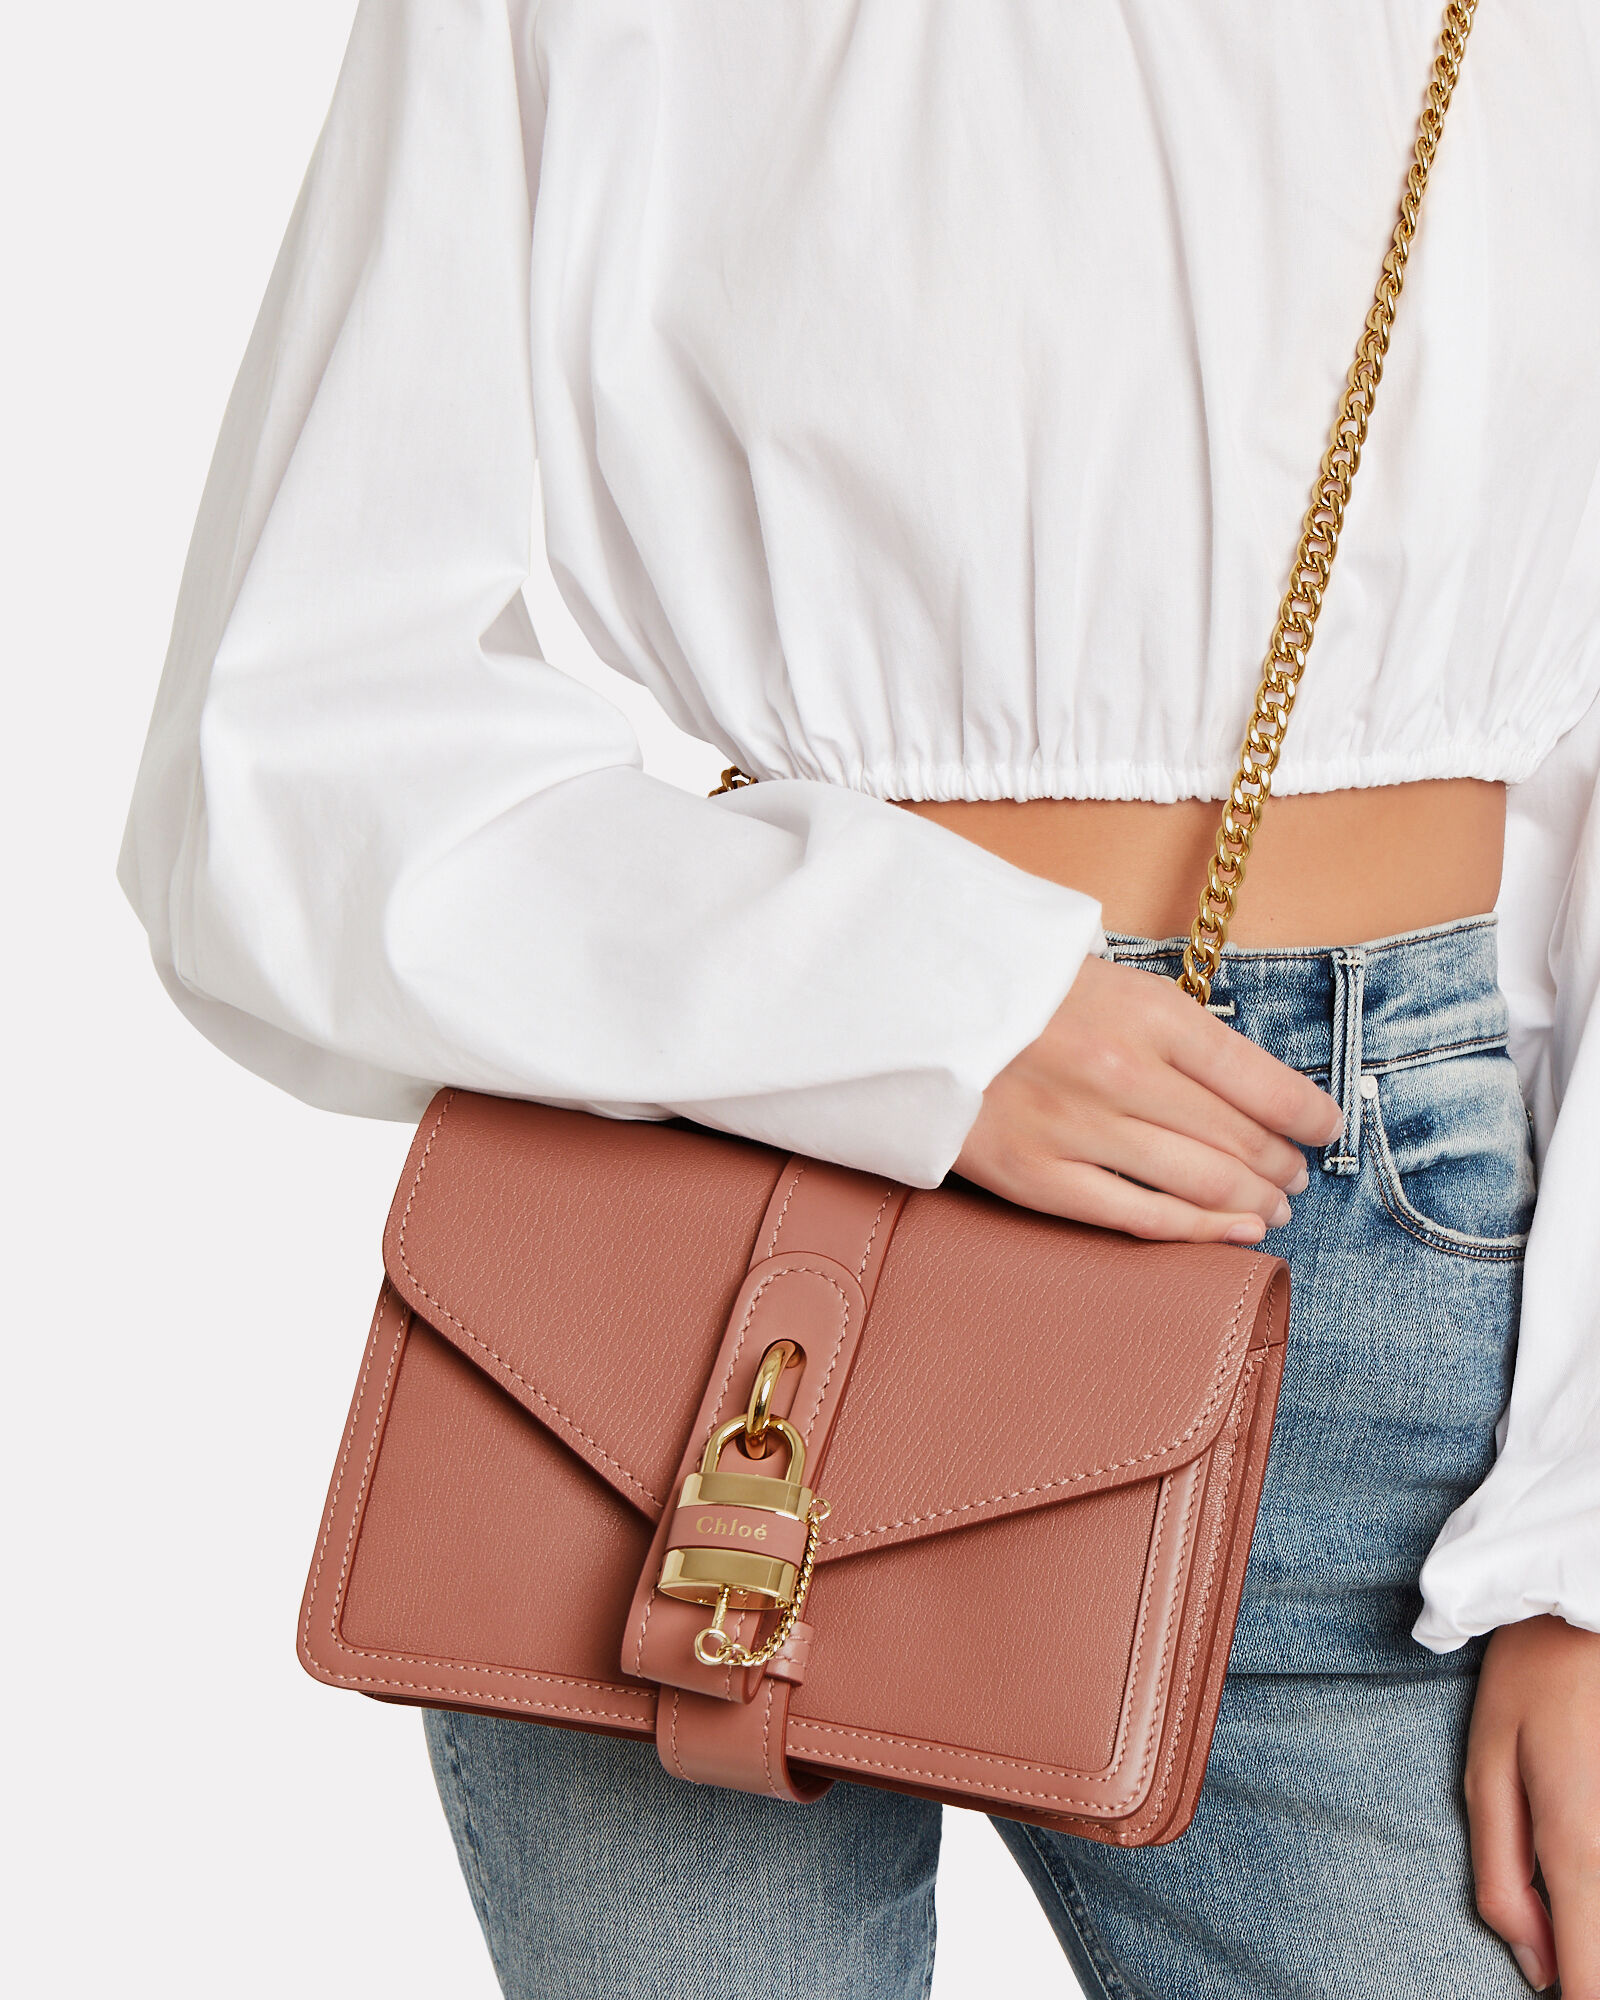 Chain Strap Leather Bag, PINK, hi-res